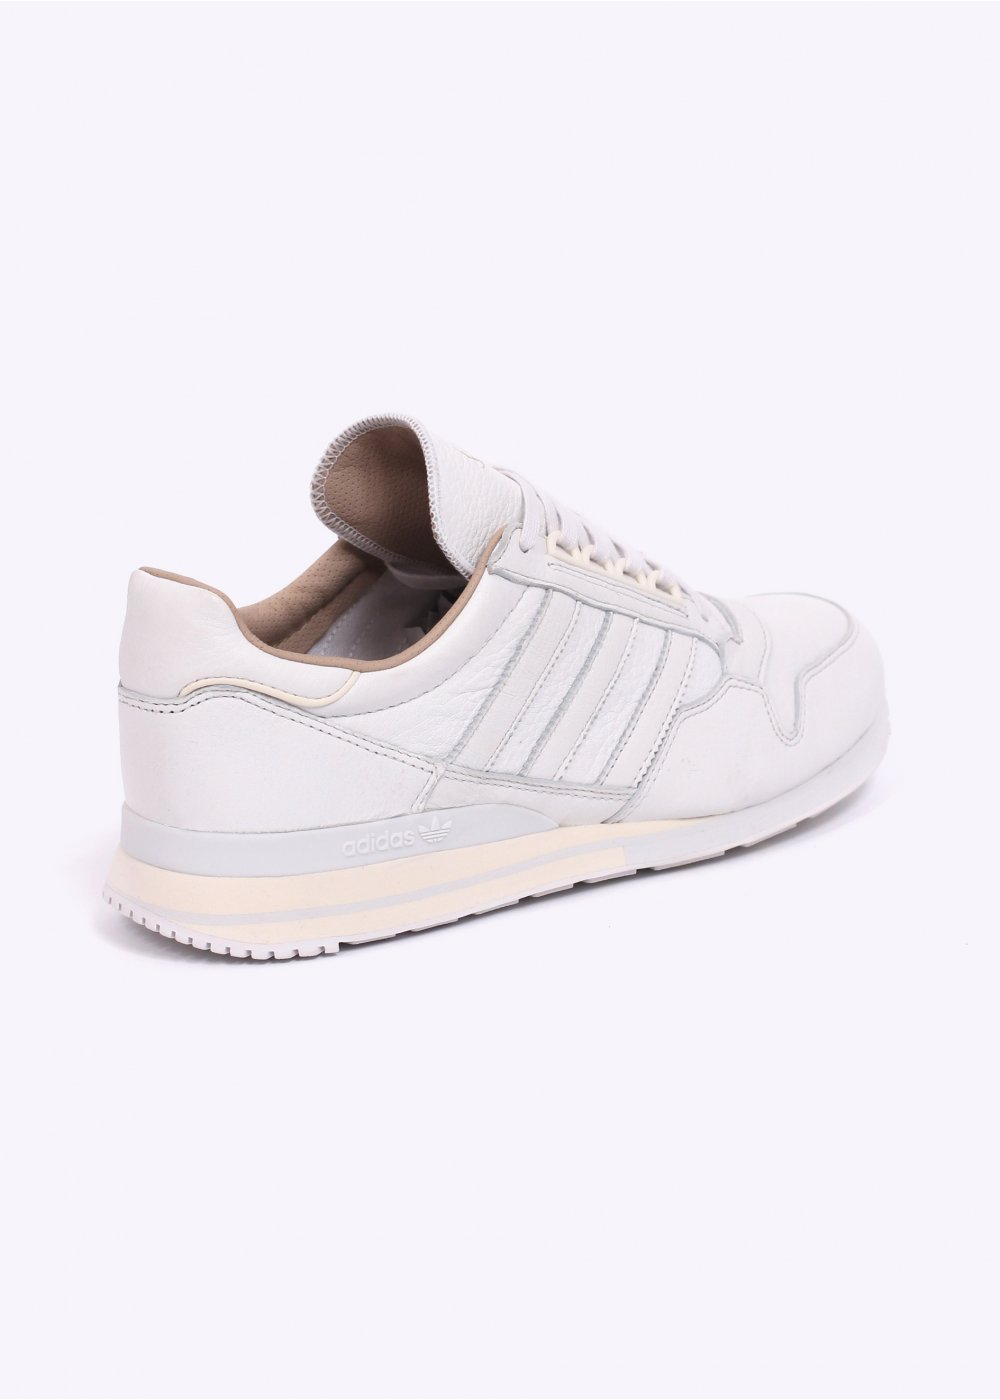 adidas zx 500 og retro white trainers